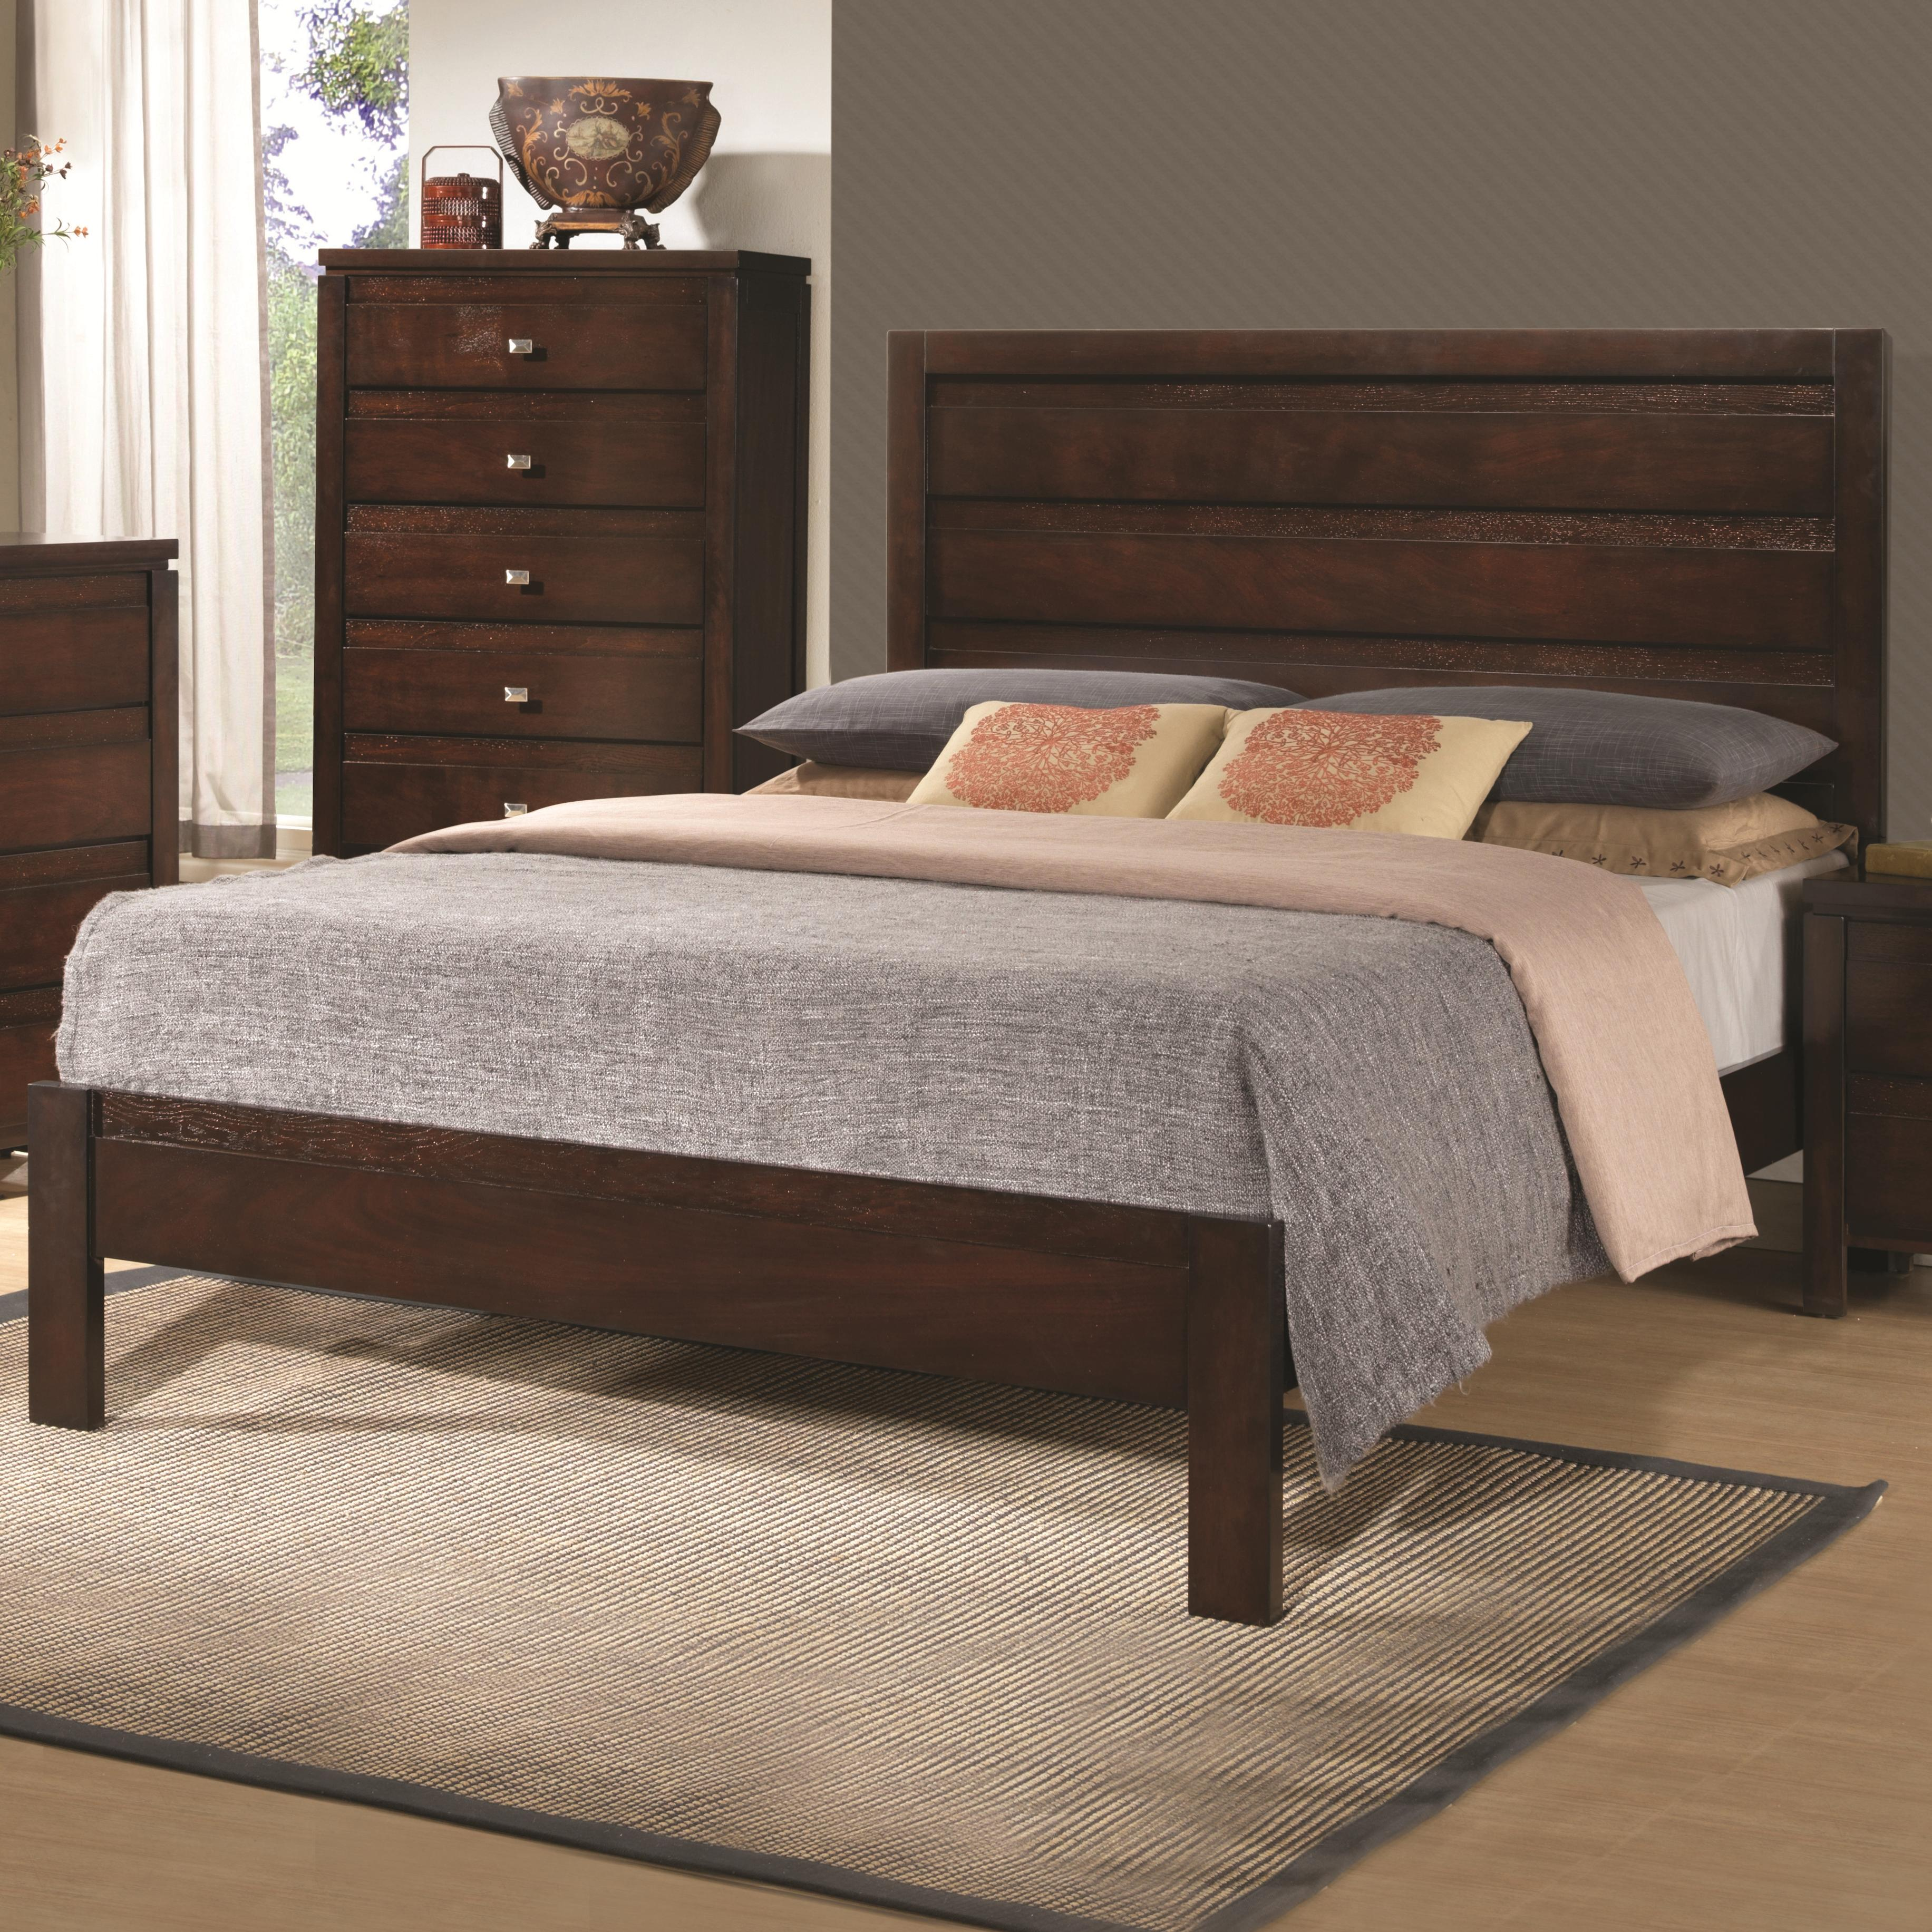 Cal king 4 pc set, cameron ( bed, dresser, nightstand, mirror)